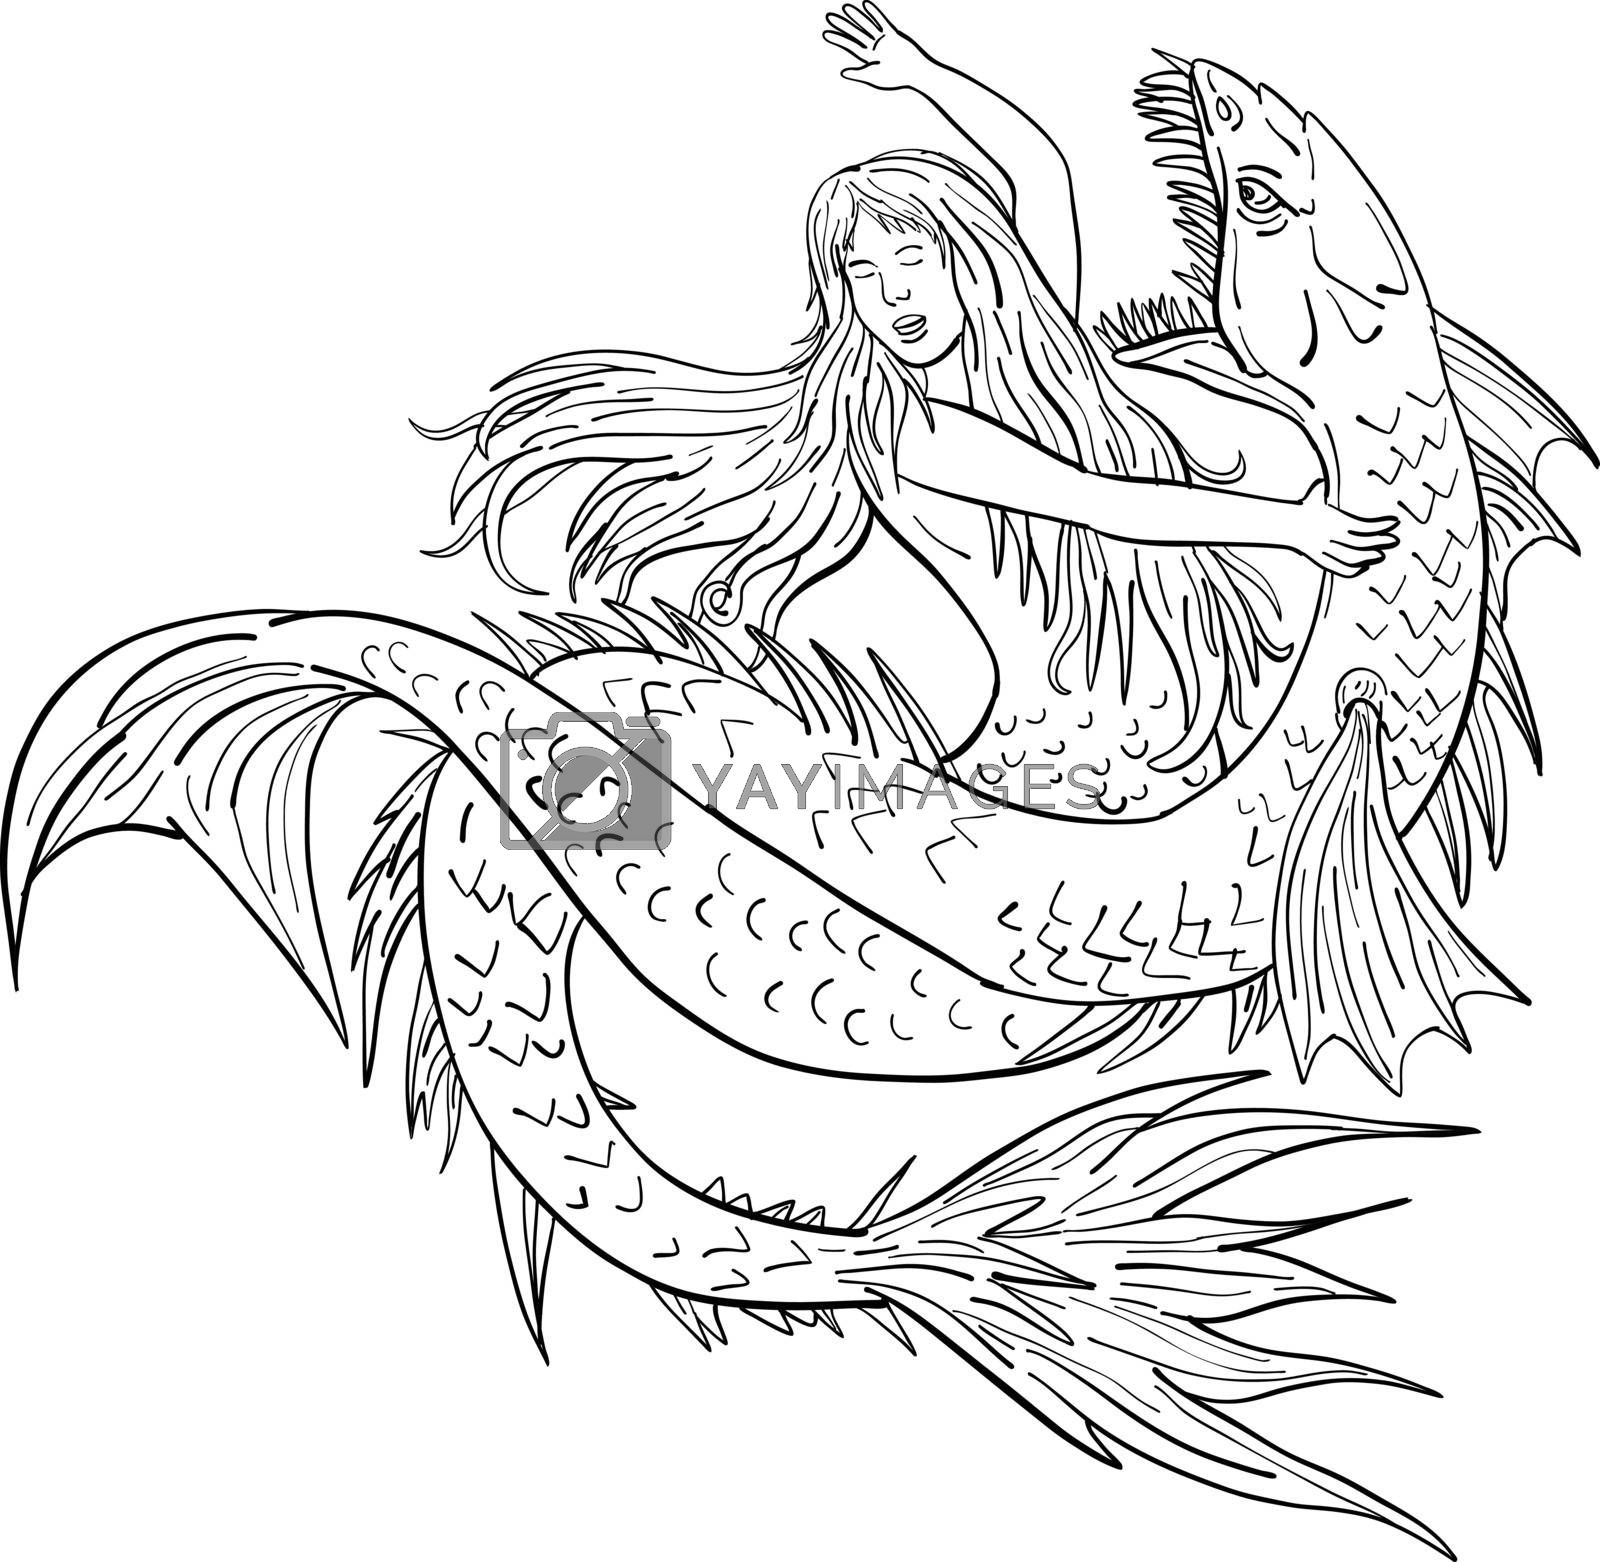 Mermaid Fighting a Sea Serpent Drawing Black and White by patrimonio